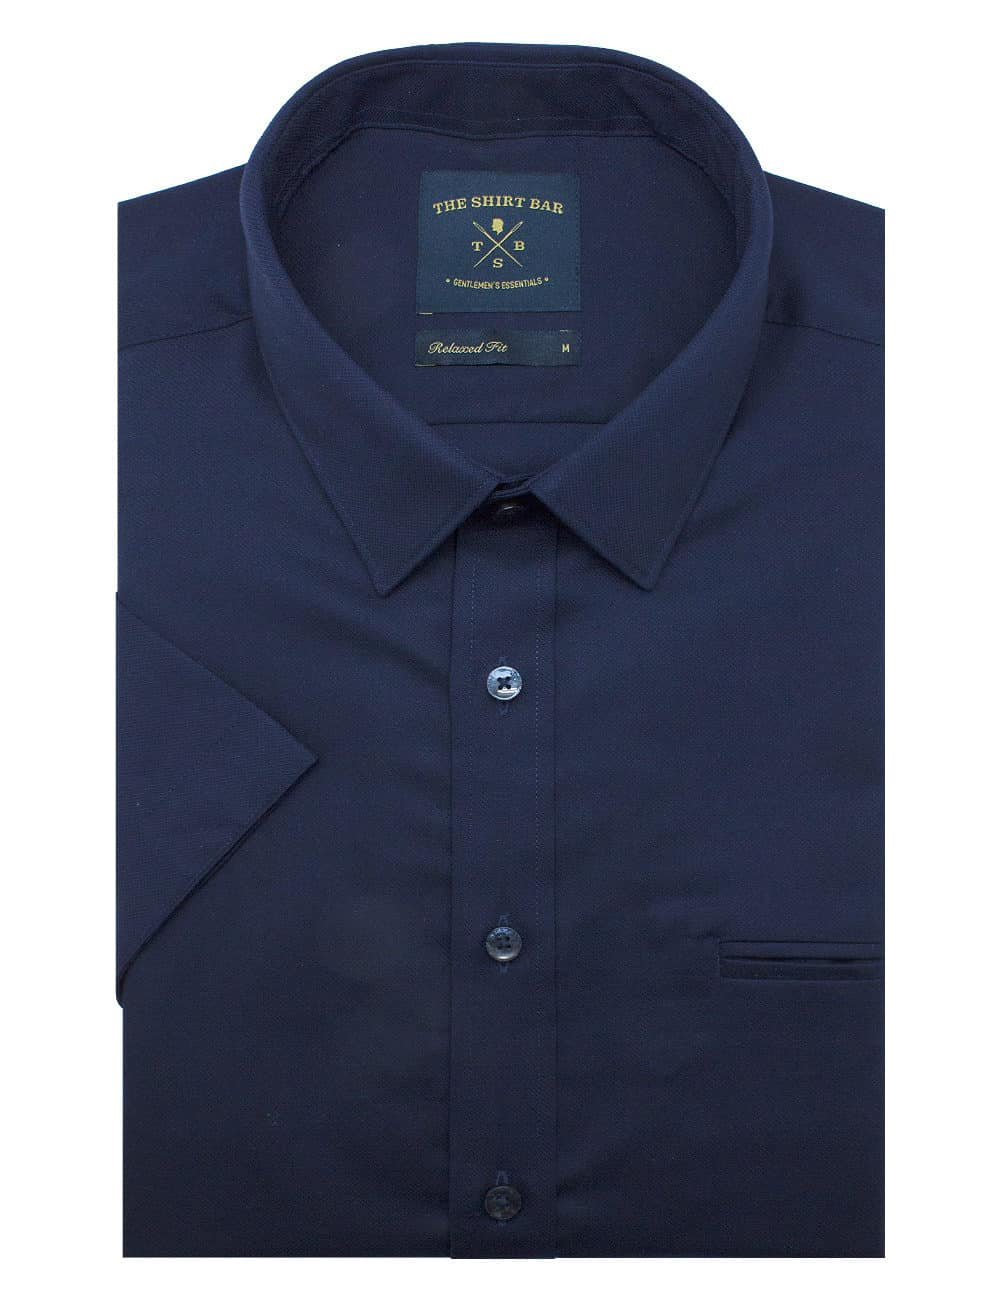 Relaxed Fit 100% Premium Cotton Solid Navy Easy Iron Short Sleeve Shirt RF9SNB2.17